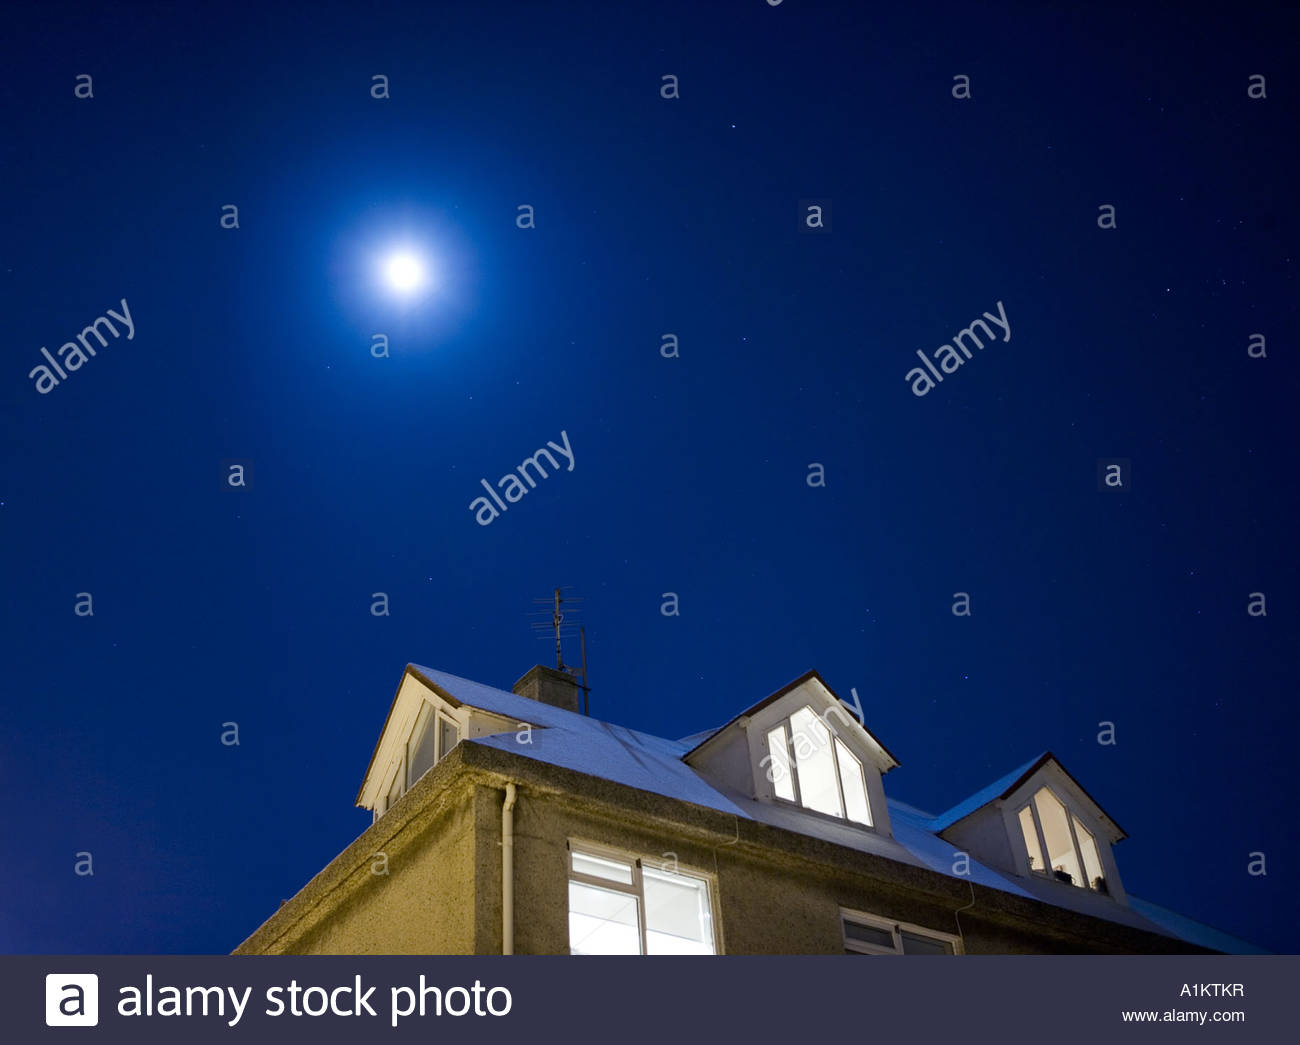 Moon shining over a house in Reykjavik, Iceland - Stock Image